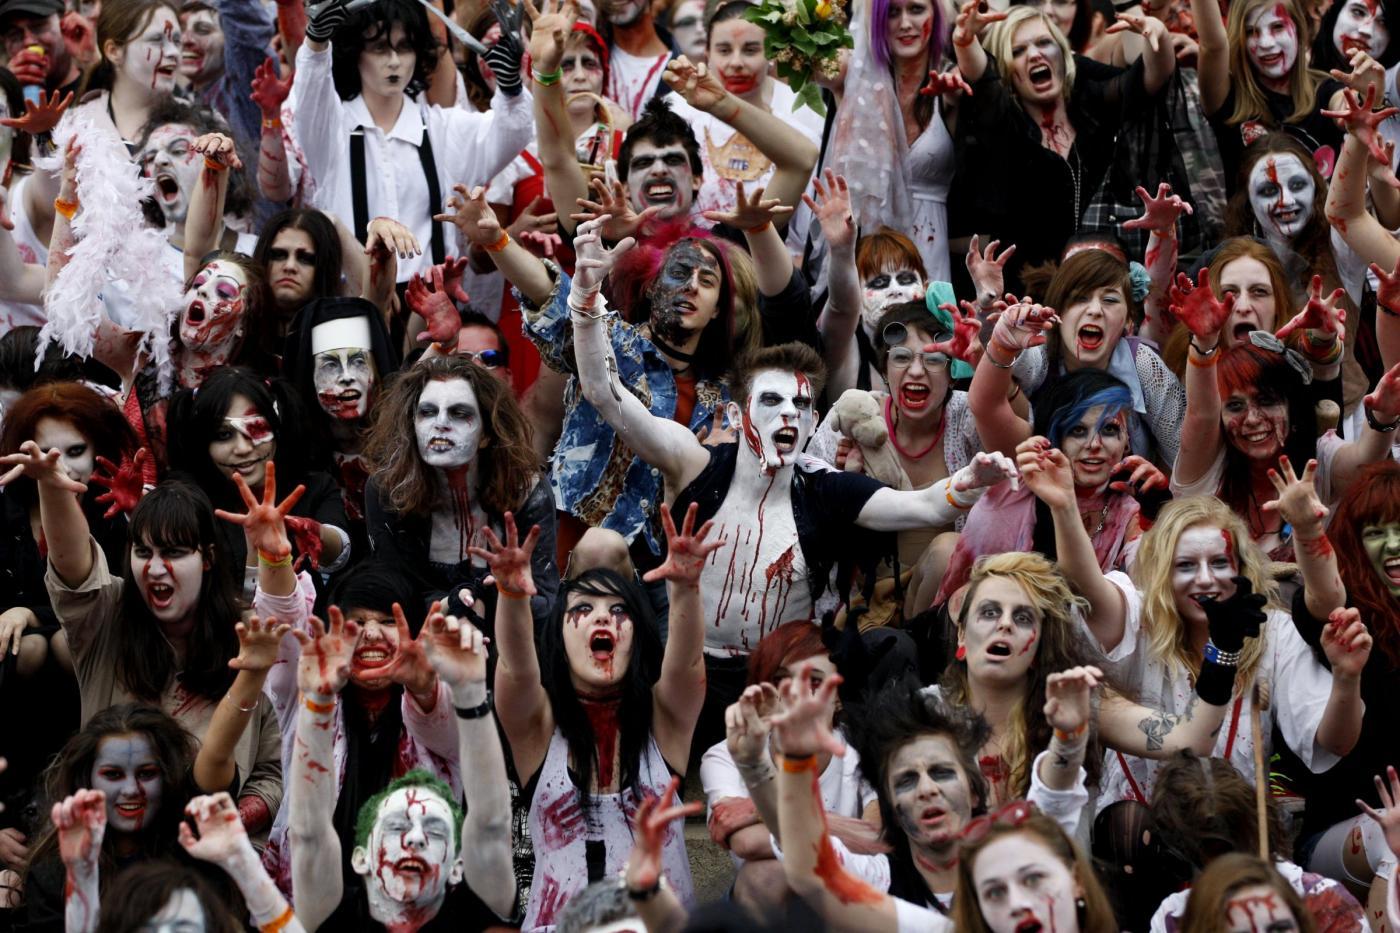 Several hundreds of participants dressed and made up as zombies pose for photo after a traditional Zombie Walk in Prague, Czech Republic, Saturday, May 5, 2012. (AP Photo/Petr David Josek)